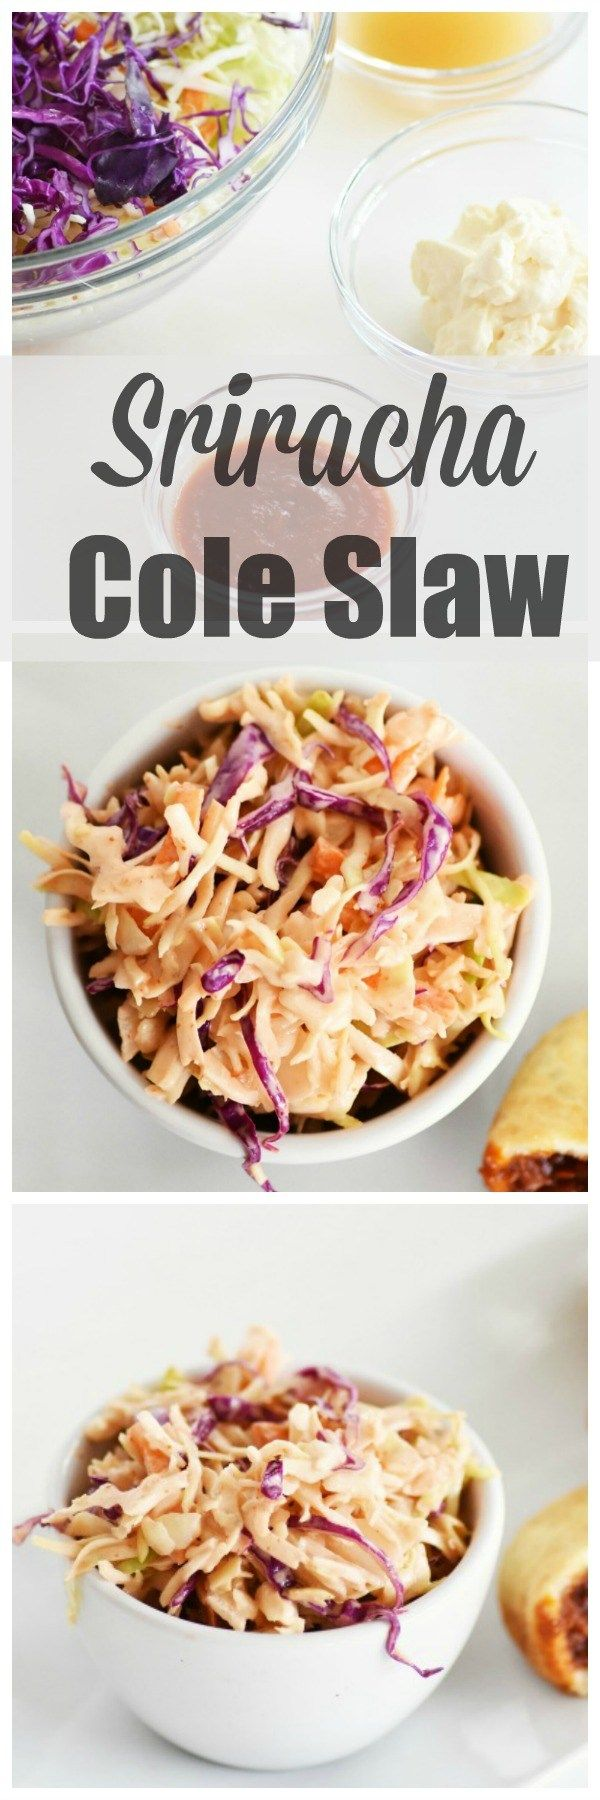 Spicy coleslaw! Kick your next side dish up with this sriracha coleslaw recipe.